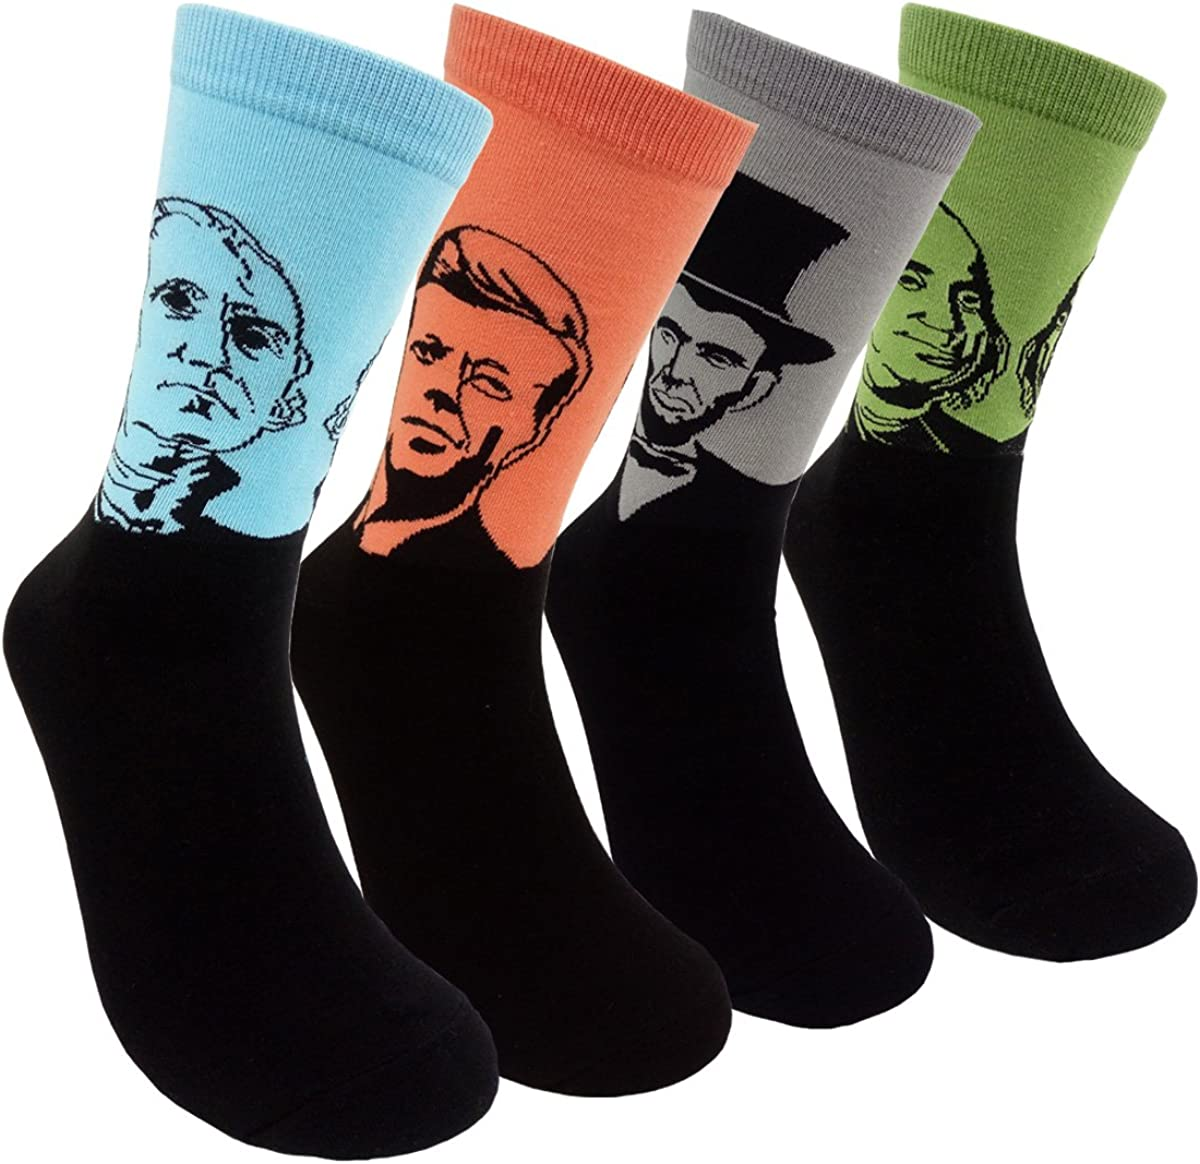 Famous Painting Art Printed Mens Dress Socks - HSELL Crazy Patterned Fun Crew Cotton Socks